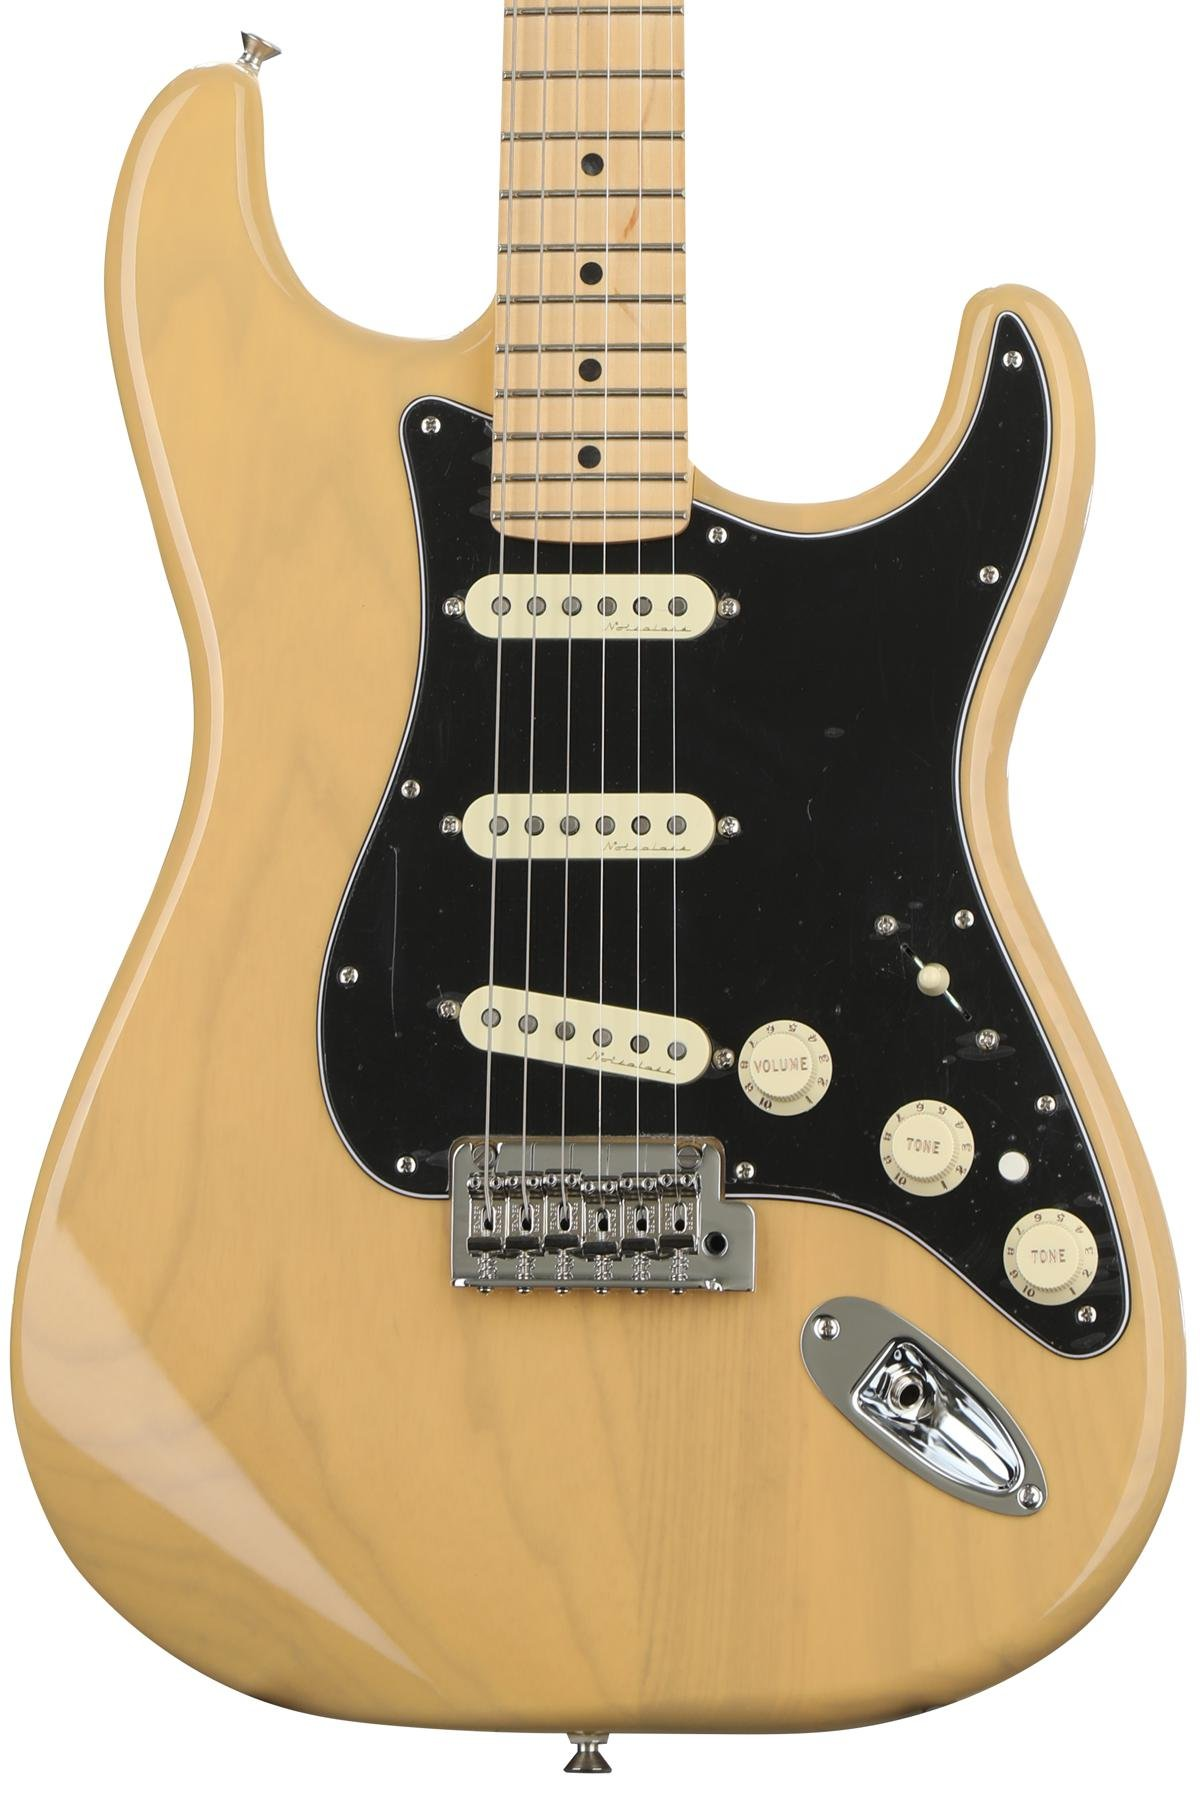 Fender Deluxe Stratocaster Vintage Blonde W Maple Fingerboard Guitar Wiring Actual Image 1